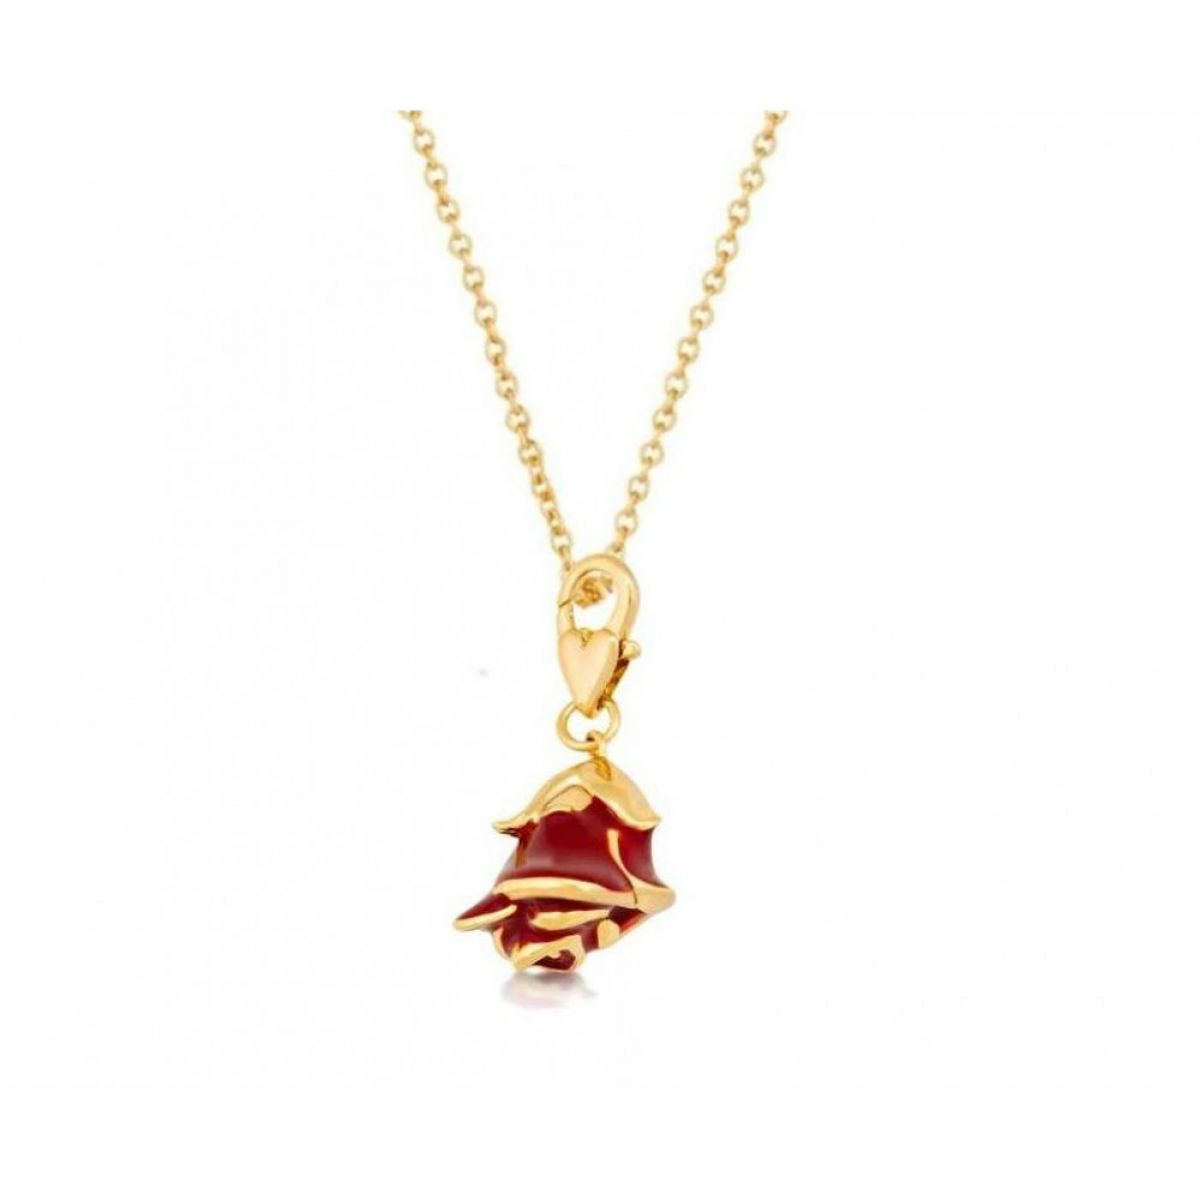 shop necklaces beast necklace products beauty rose and the moovie